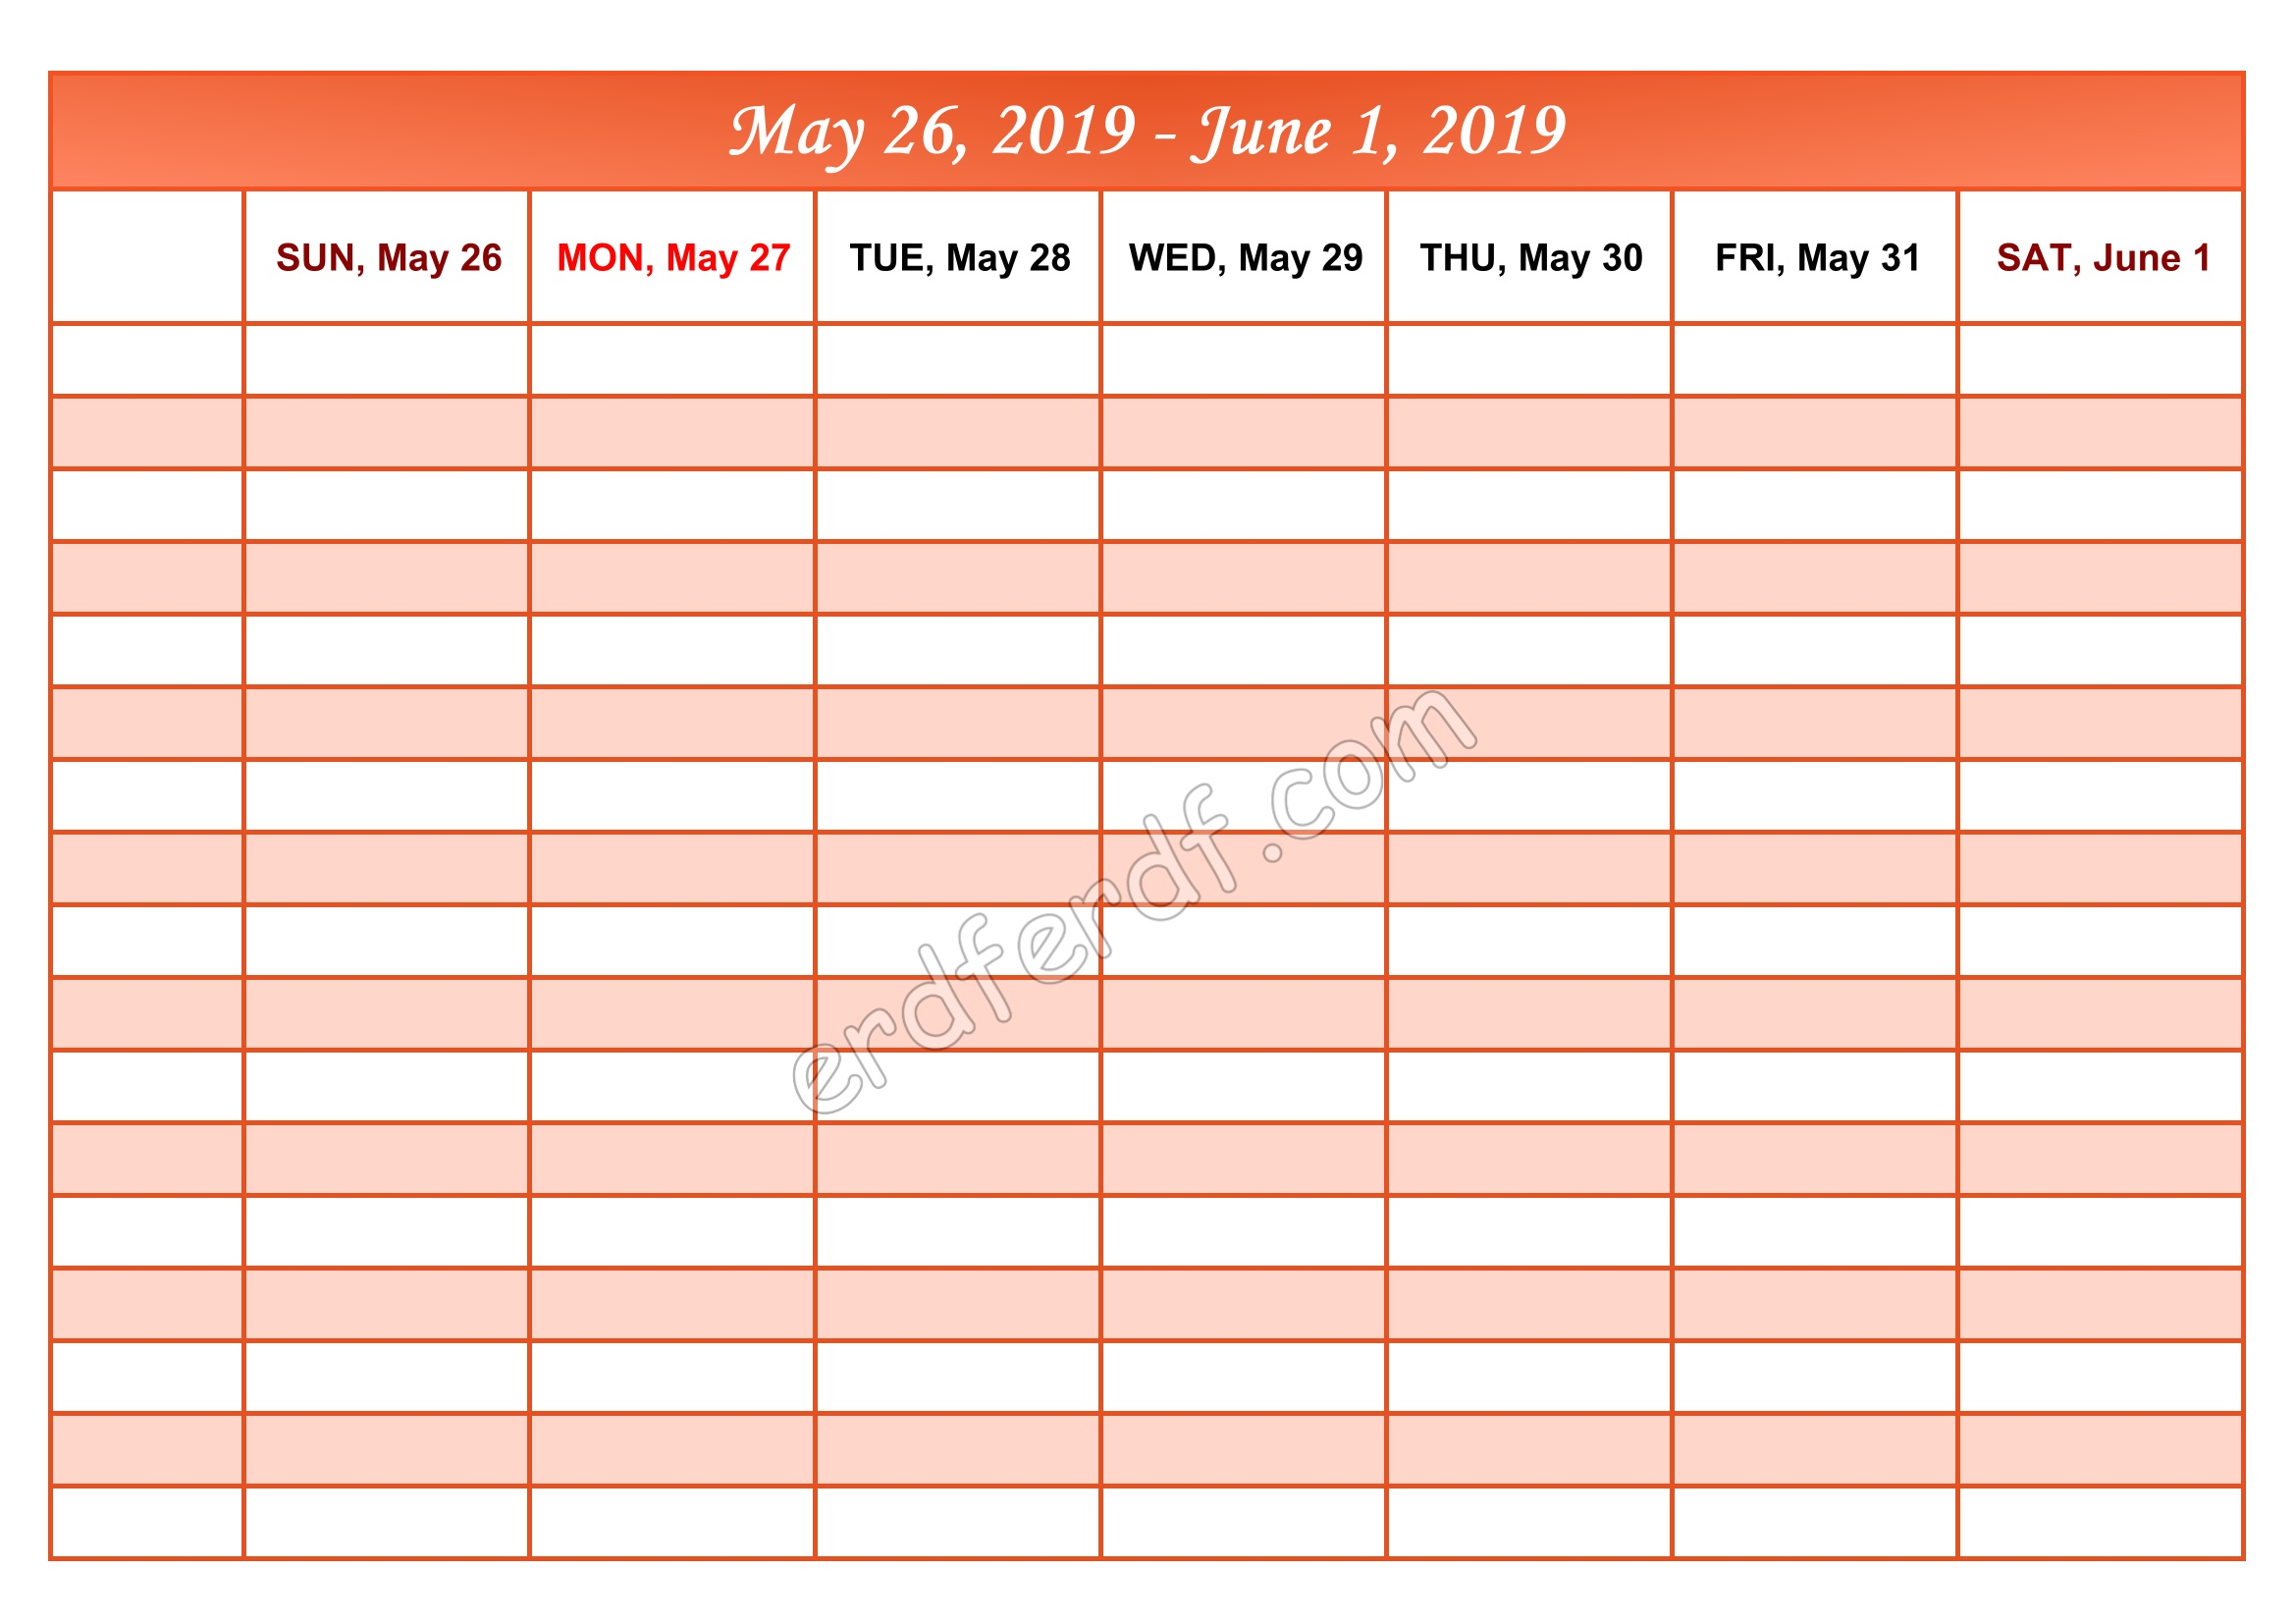 6 June Printable Calendar 2019 Weekly Month by Month